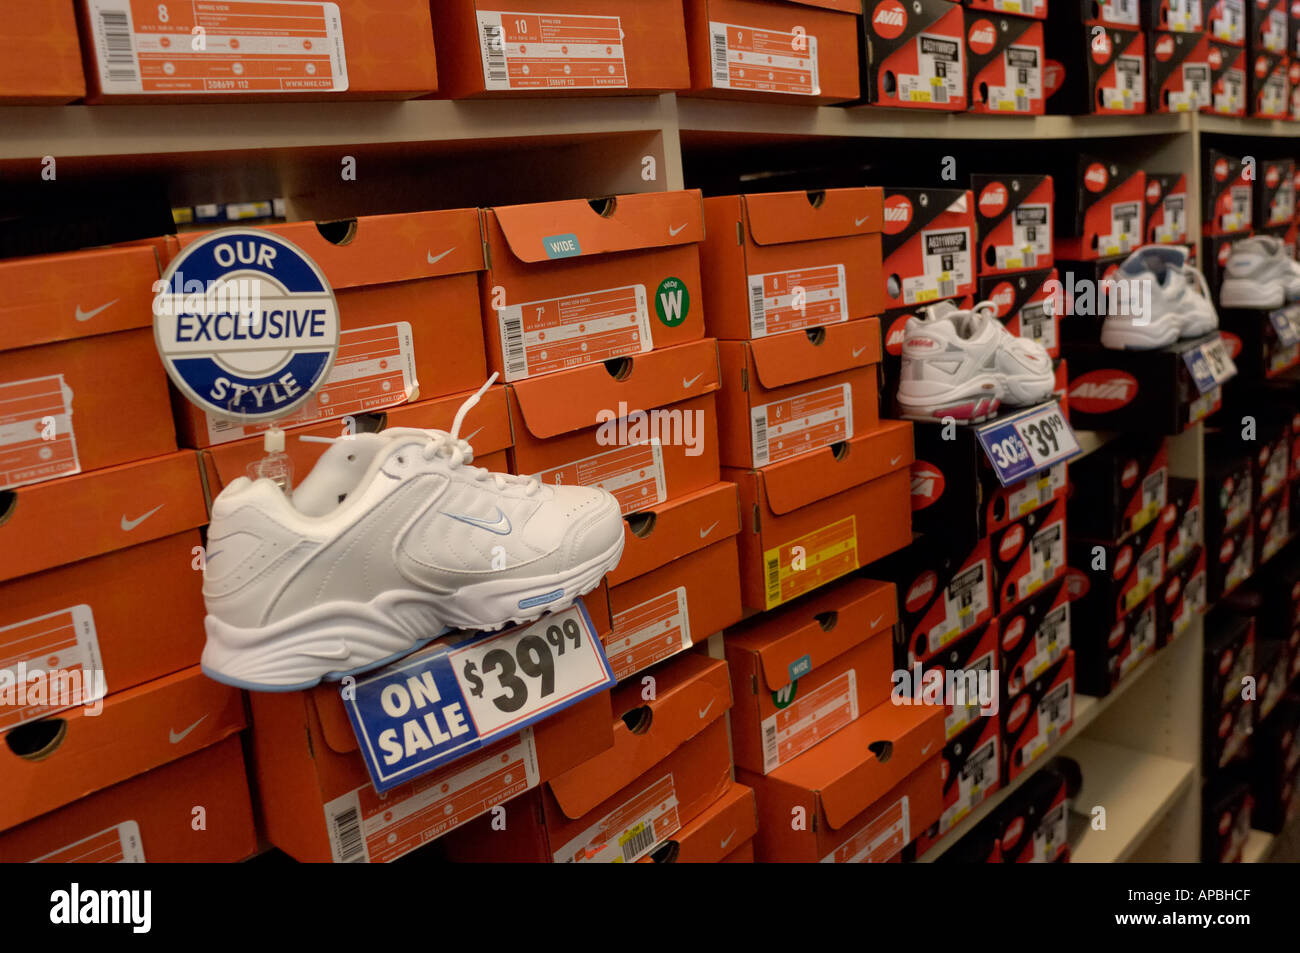 Shoes on display at a Nike discount shoe store Stock Photo  5137870 ... 0daa79cab